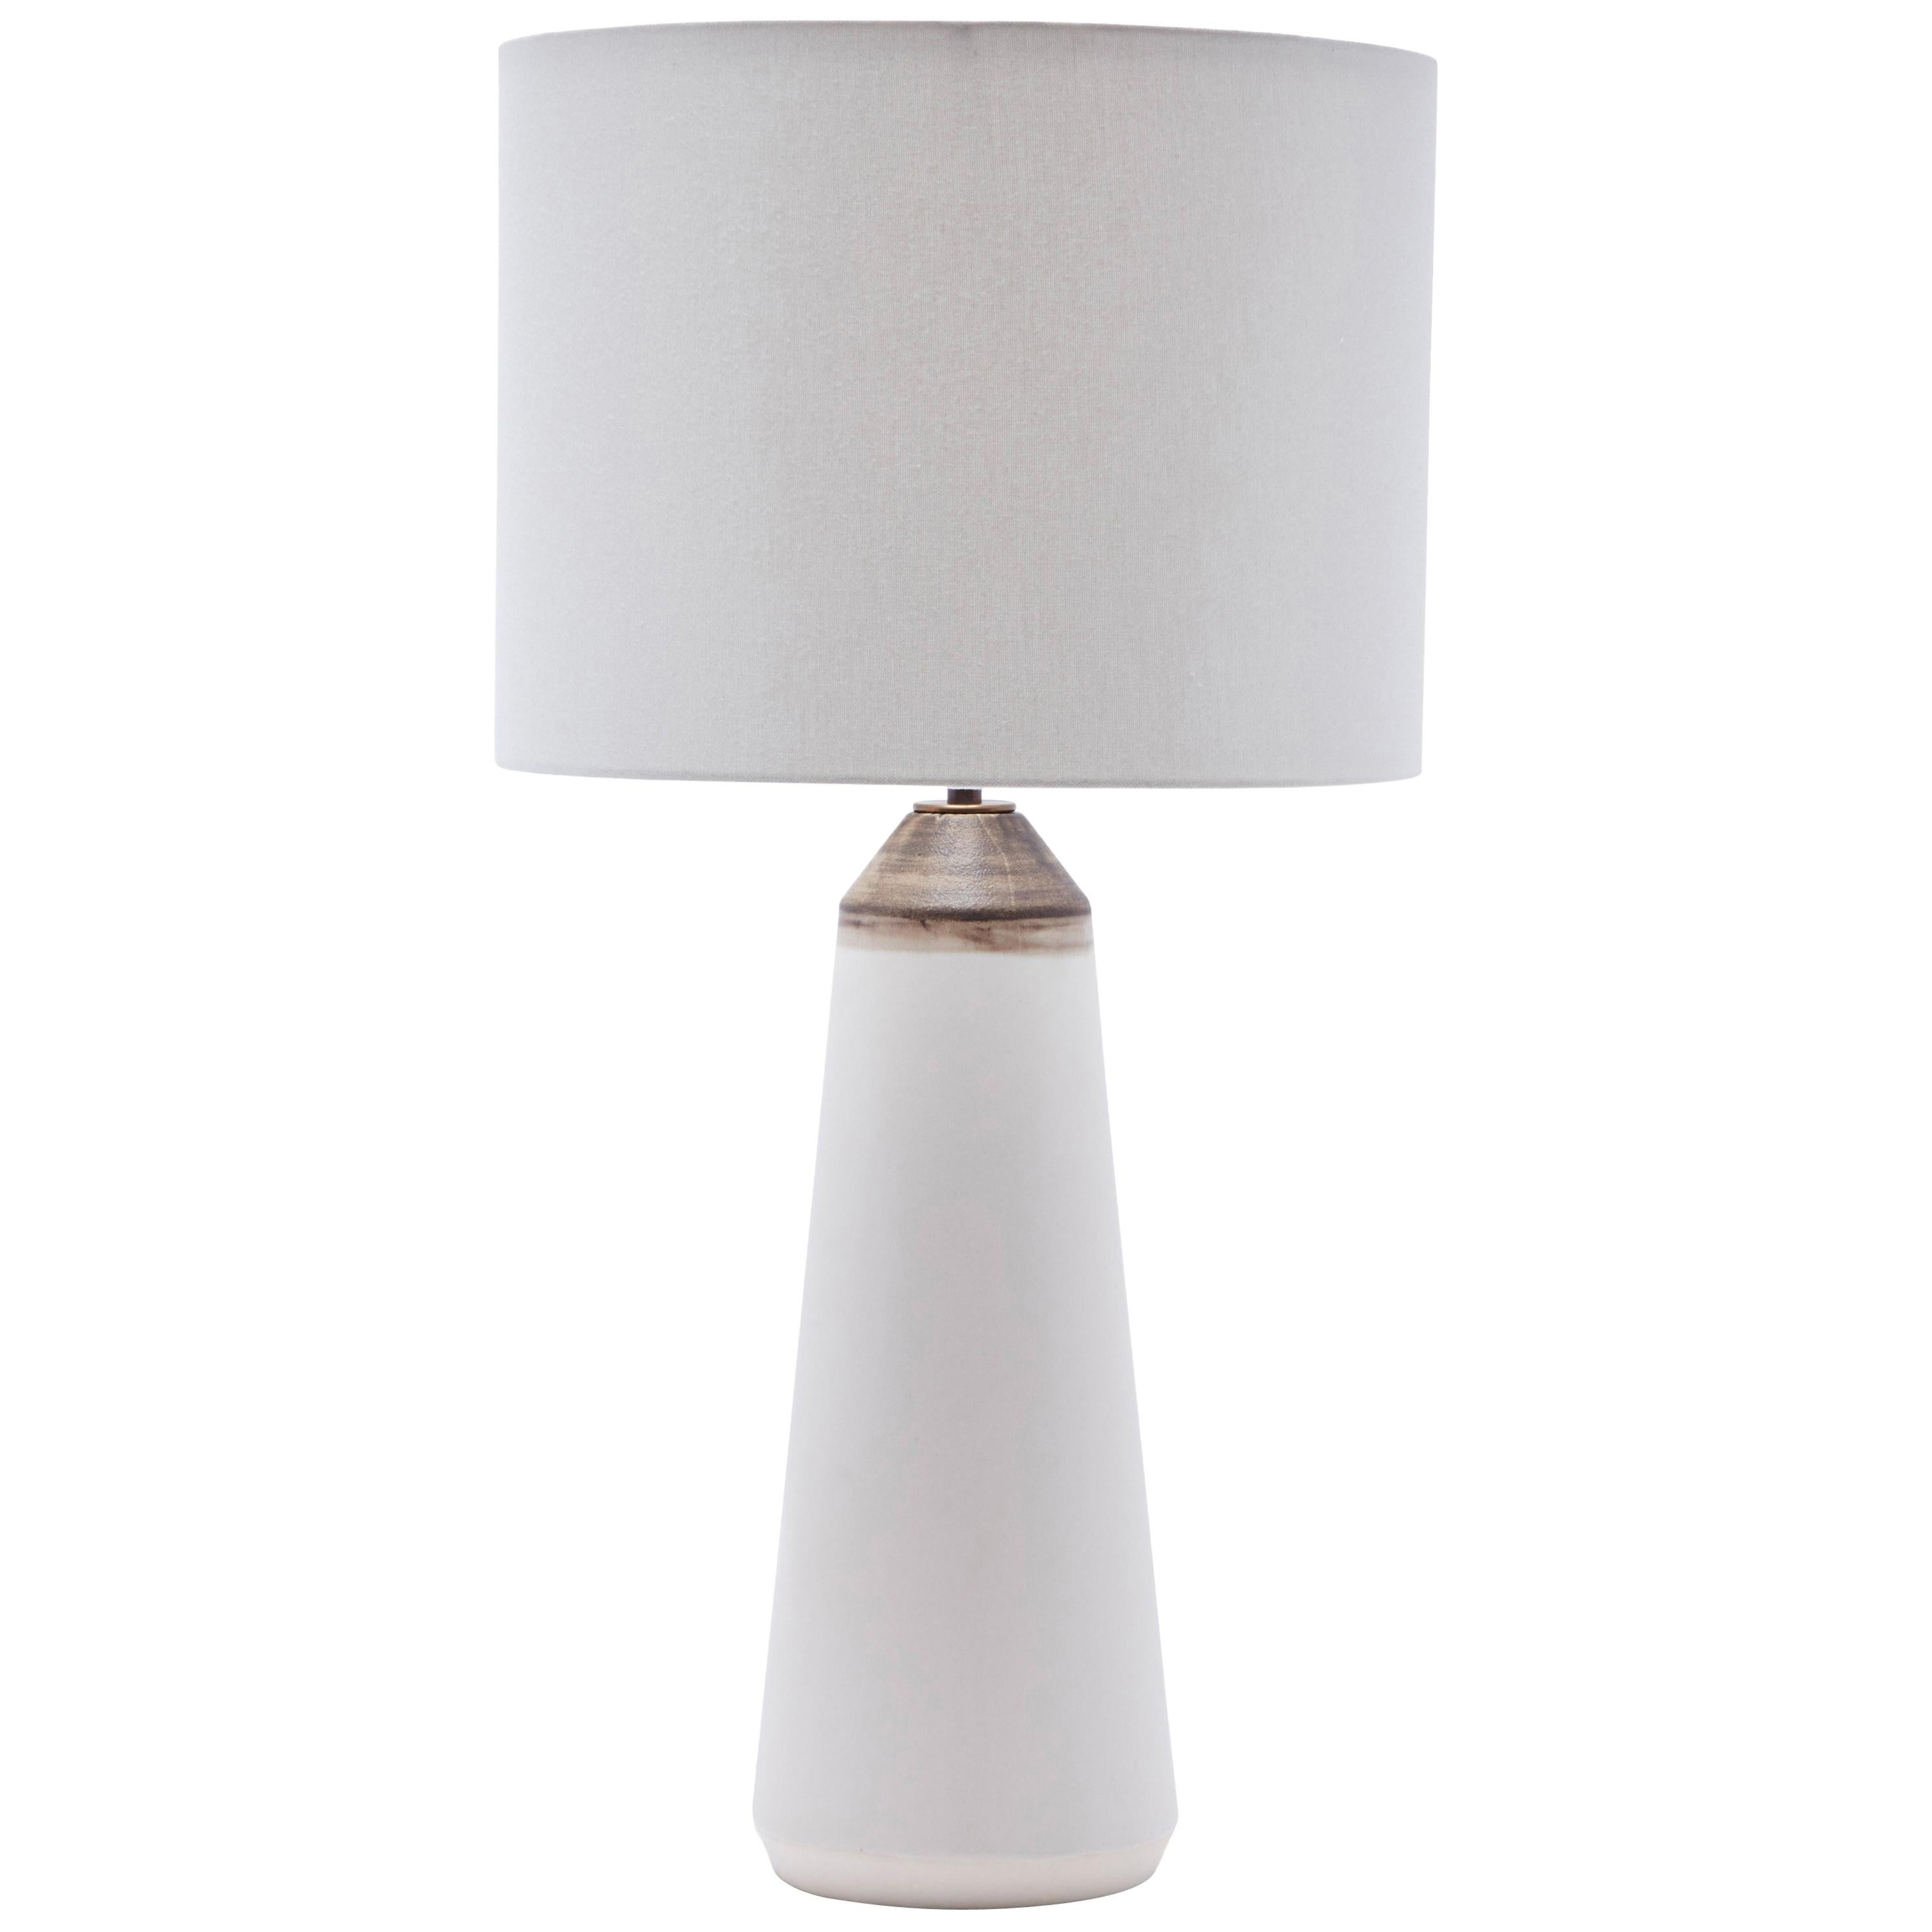 Birch Bronze Thimble Lamp by Victoria Morris for Lawson-Fenning